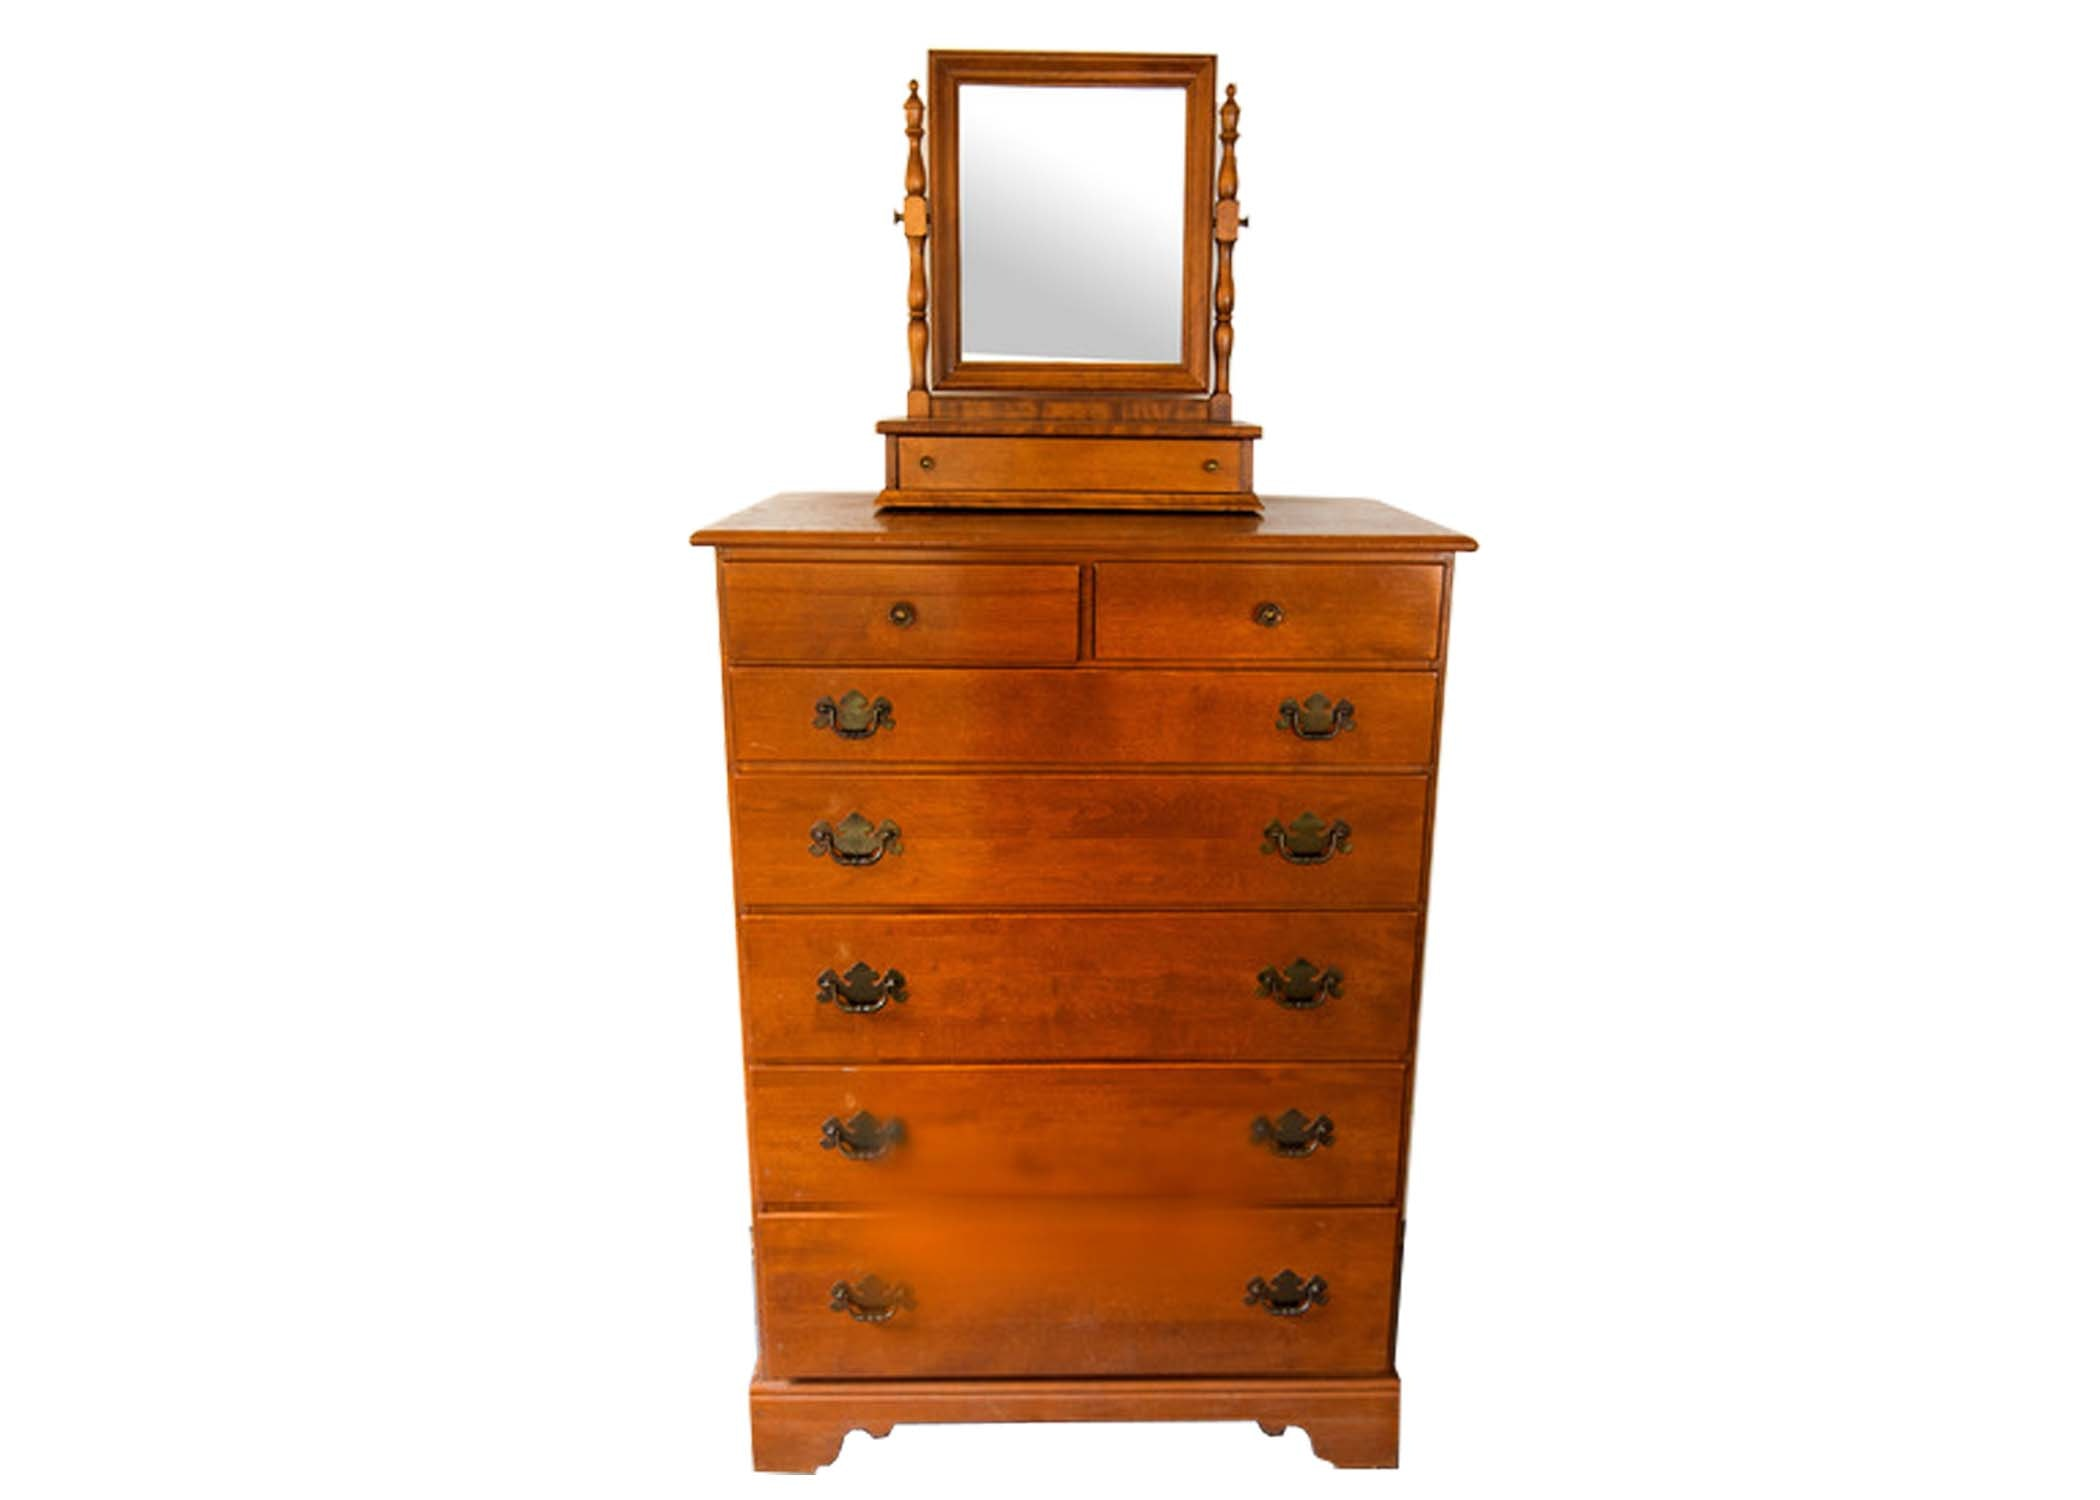 Vintage Ethan Allen Chest Of Drawers And Table Top Mirror ...